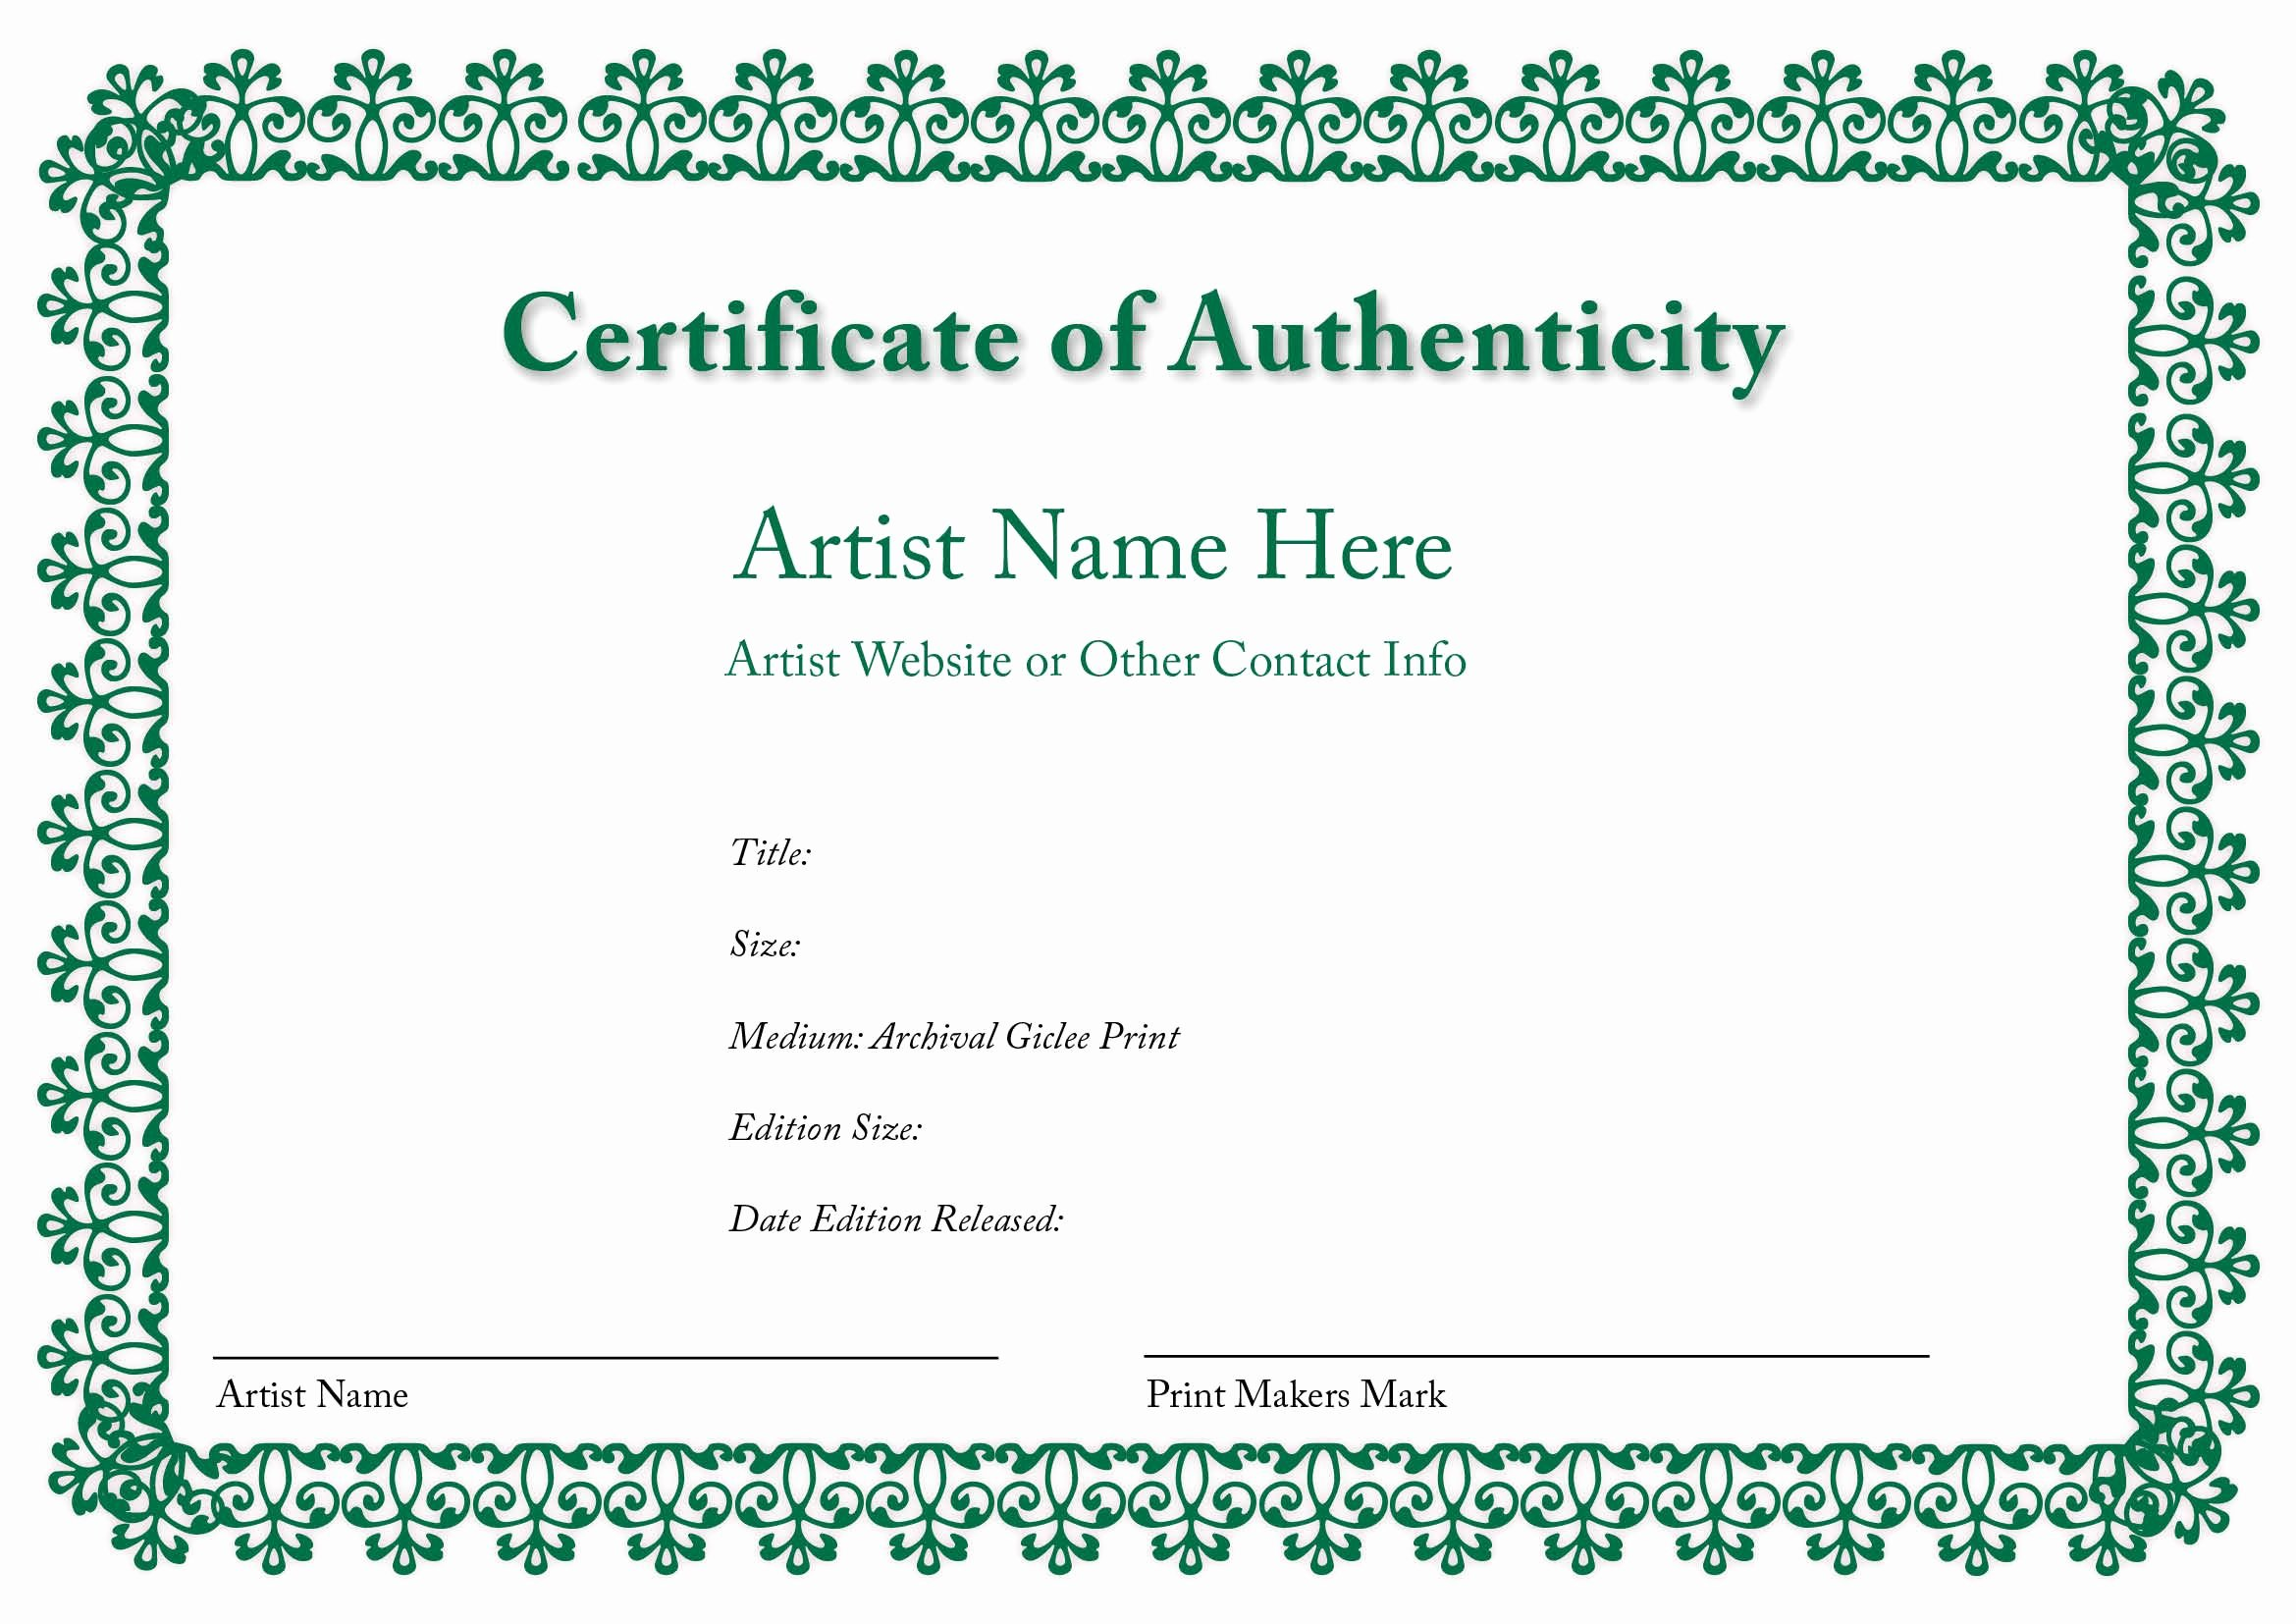 Artwork Certificate Of Authenticity Template Awesome Certificate Of Authenticity Of An Art Print In 2019